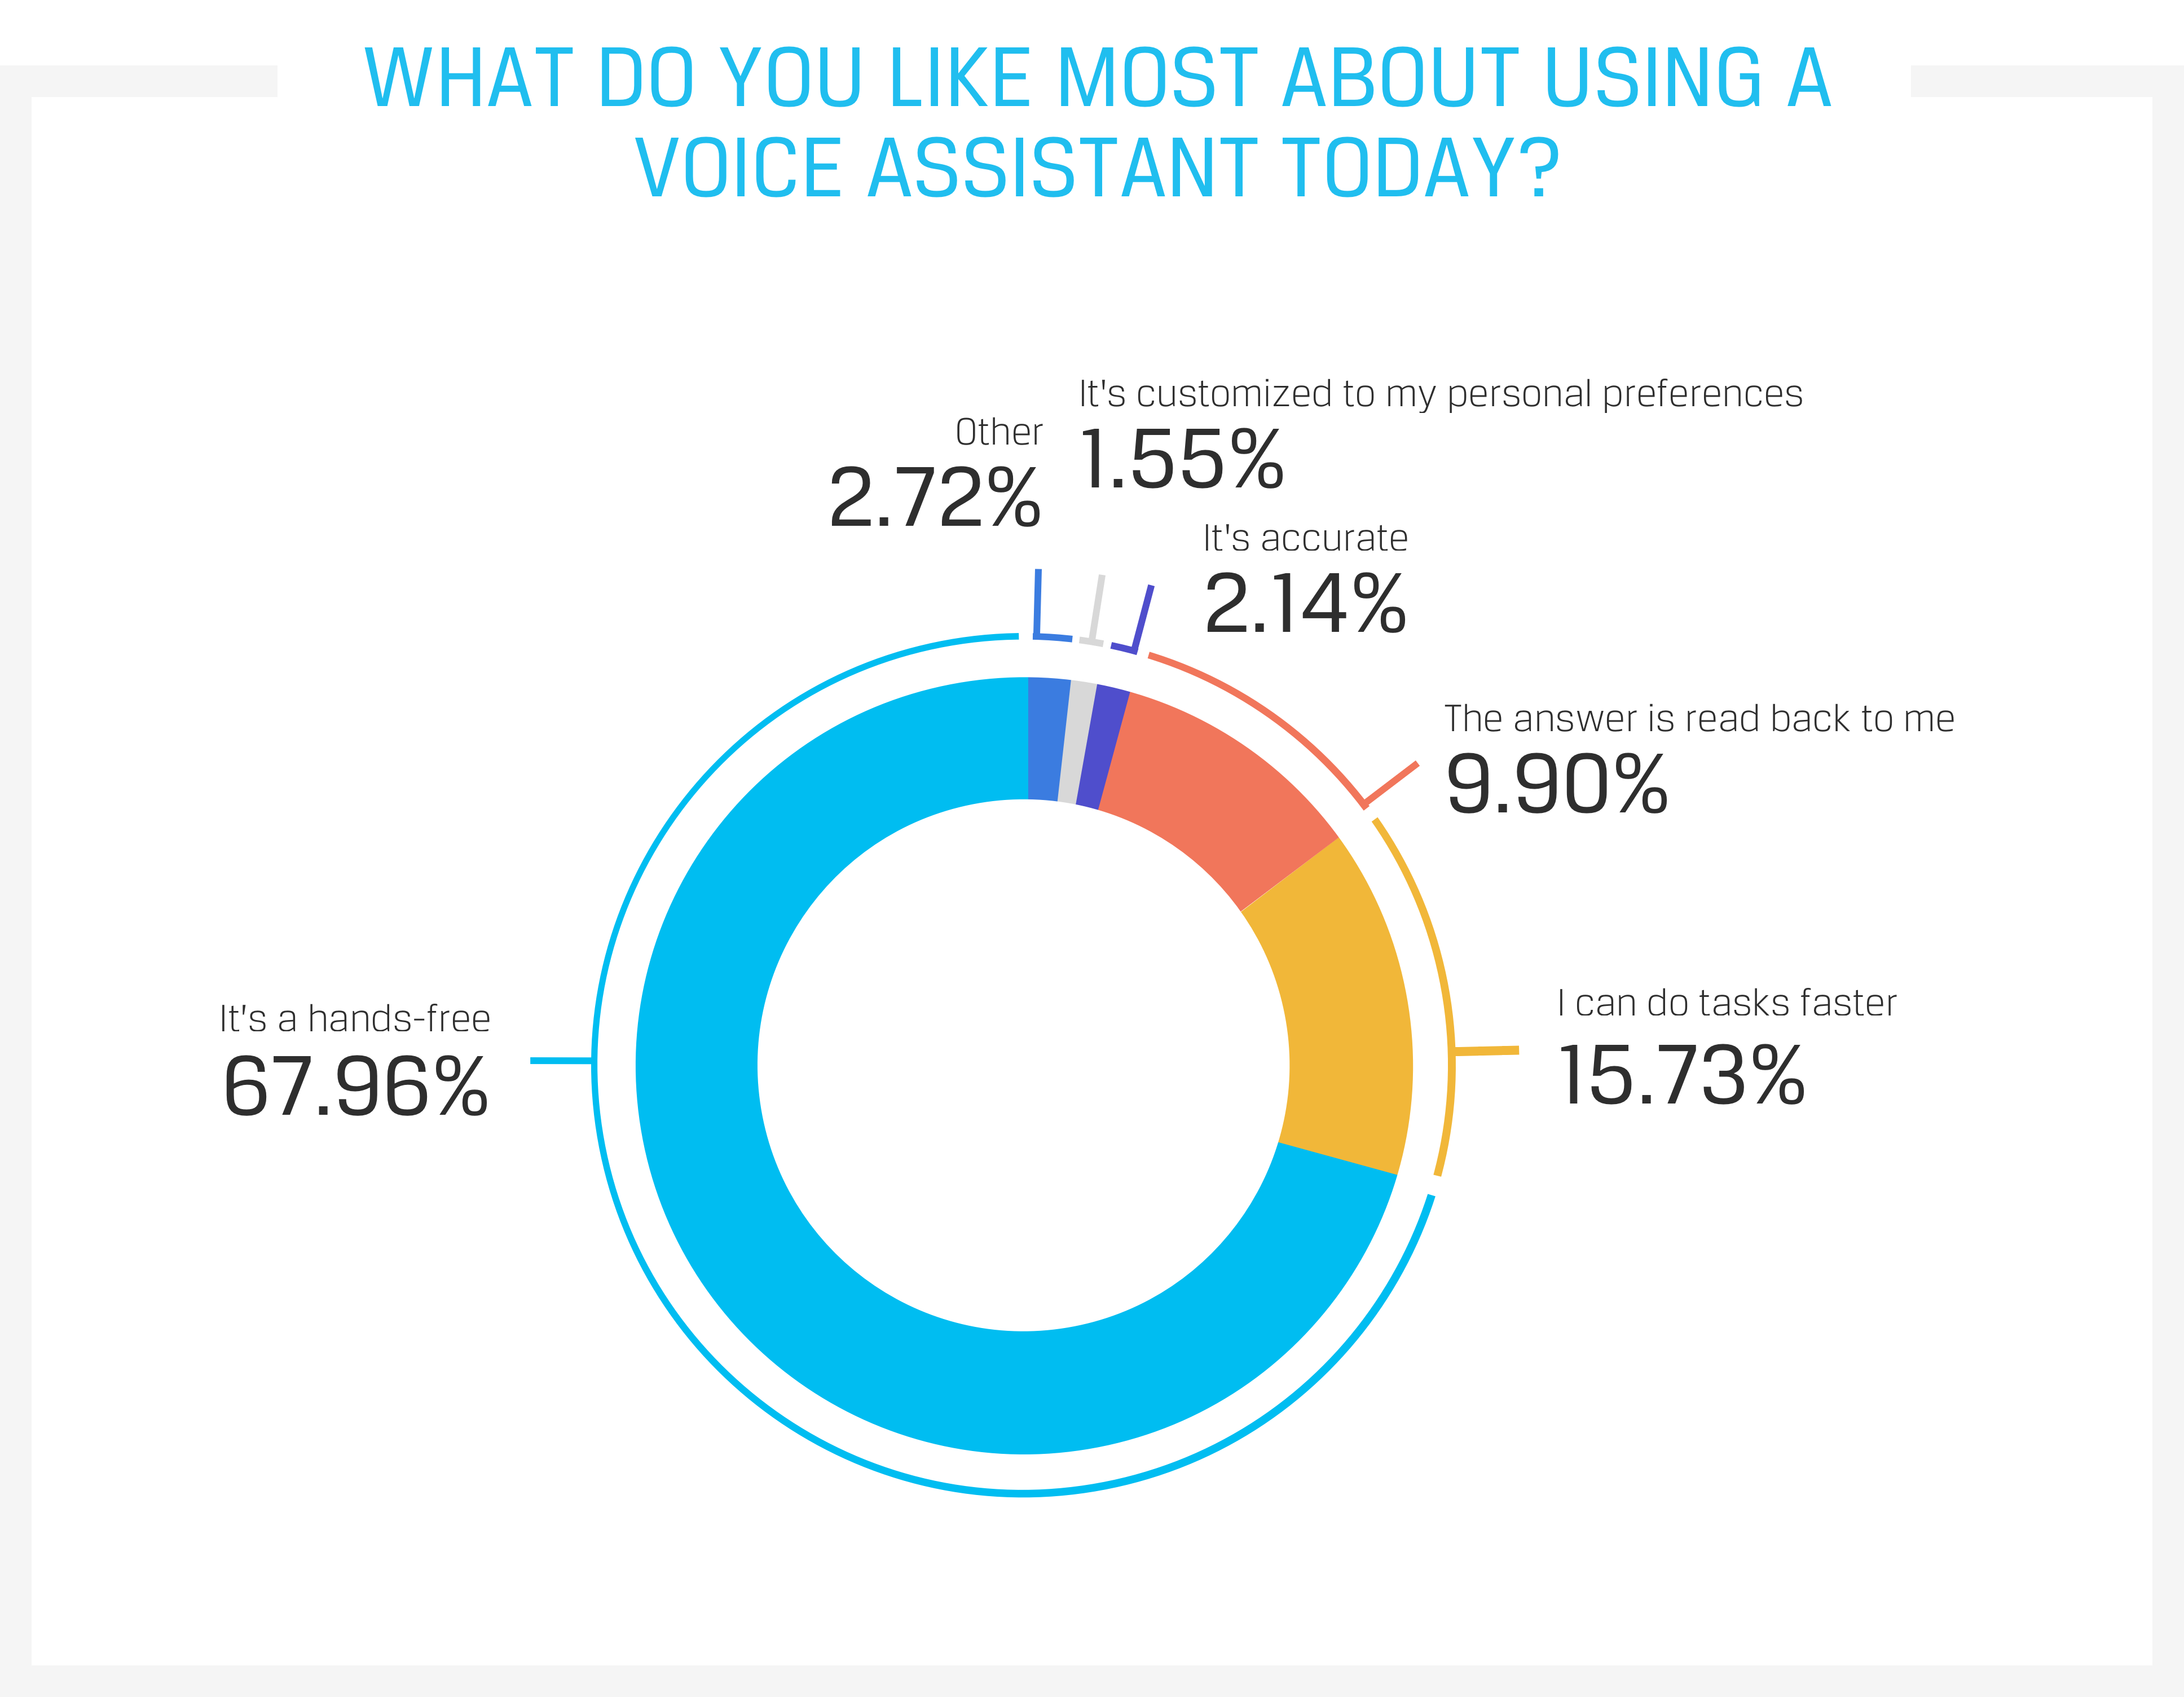 What do you like most about using a voice assistant today?